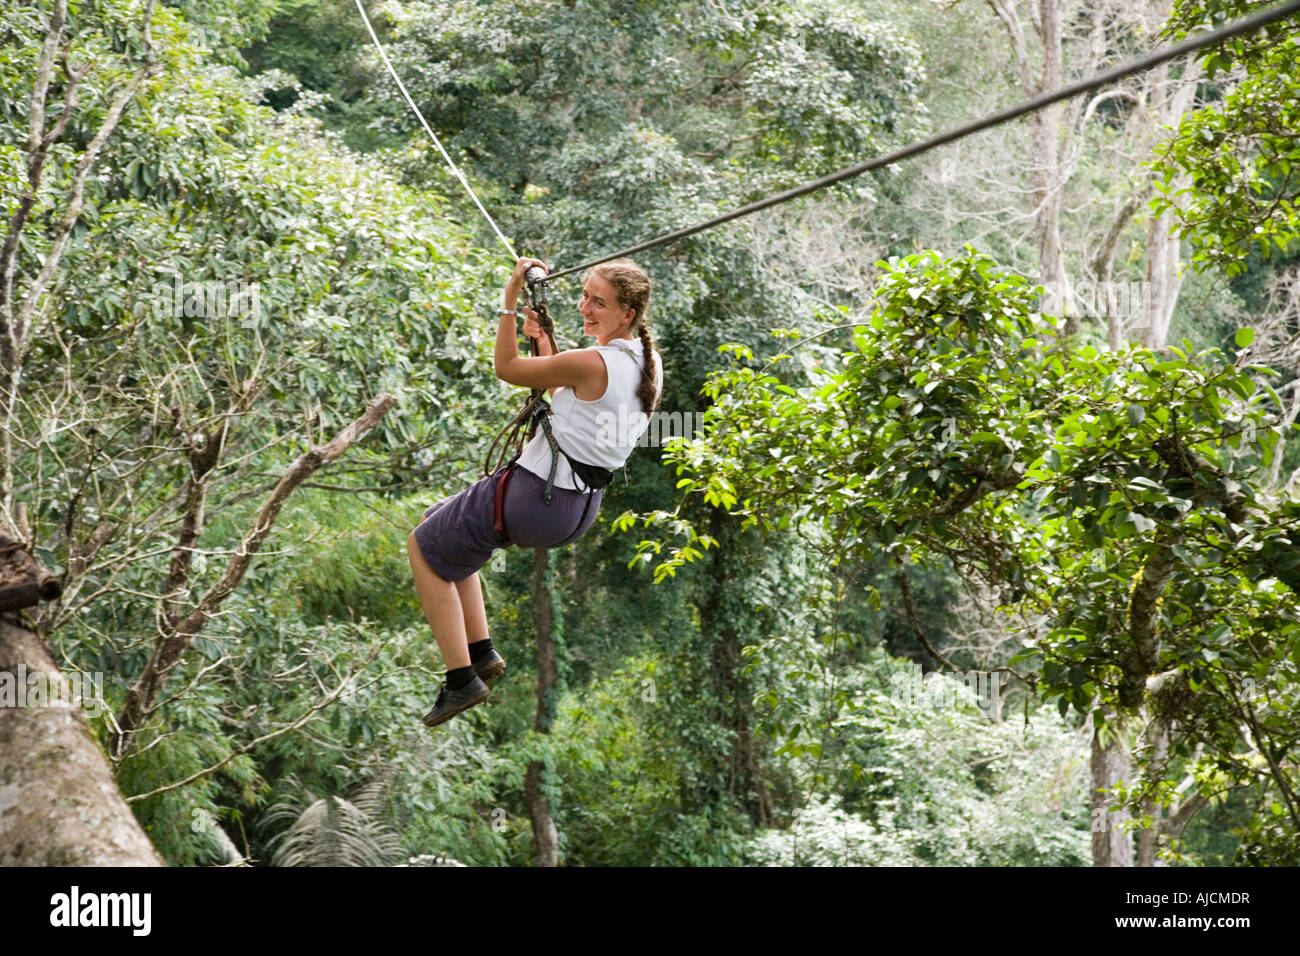 Goo Goo Dolls, Dizzy Up The Girl Full Album Zip !FREE! woman-on-a-zip-line-at-the-gibbon-experience-near-huay-xai-on-the-AJCMDR